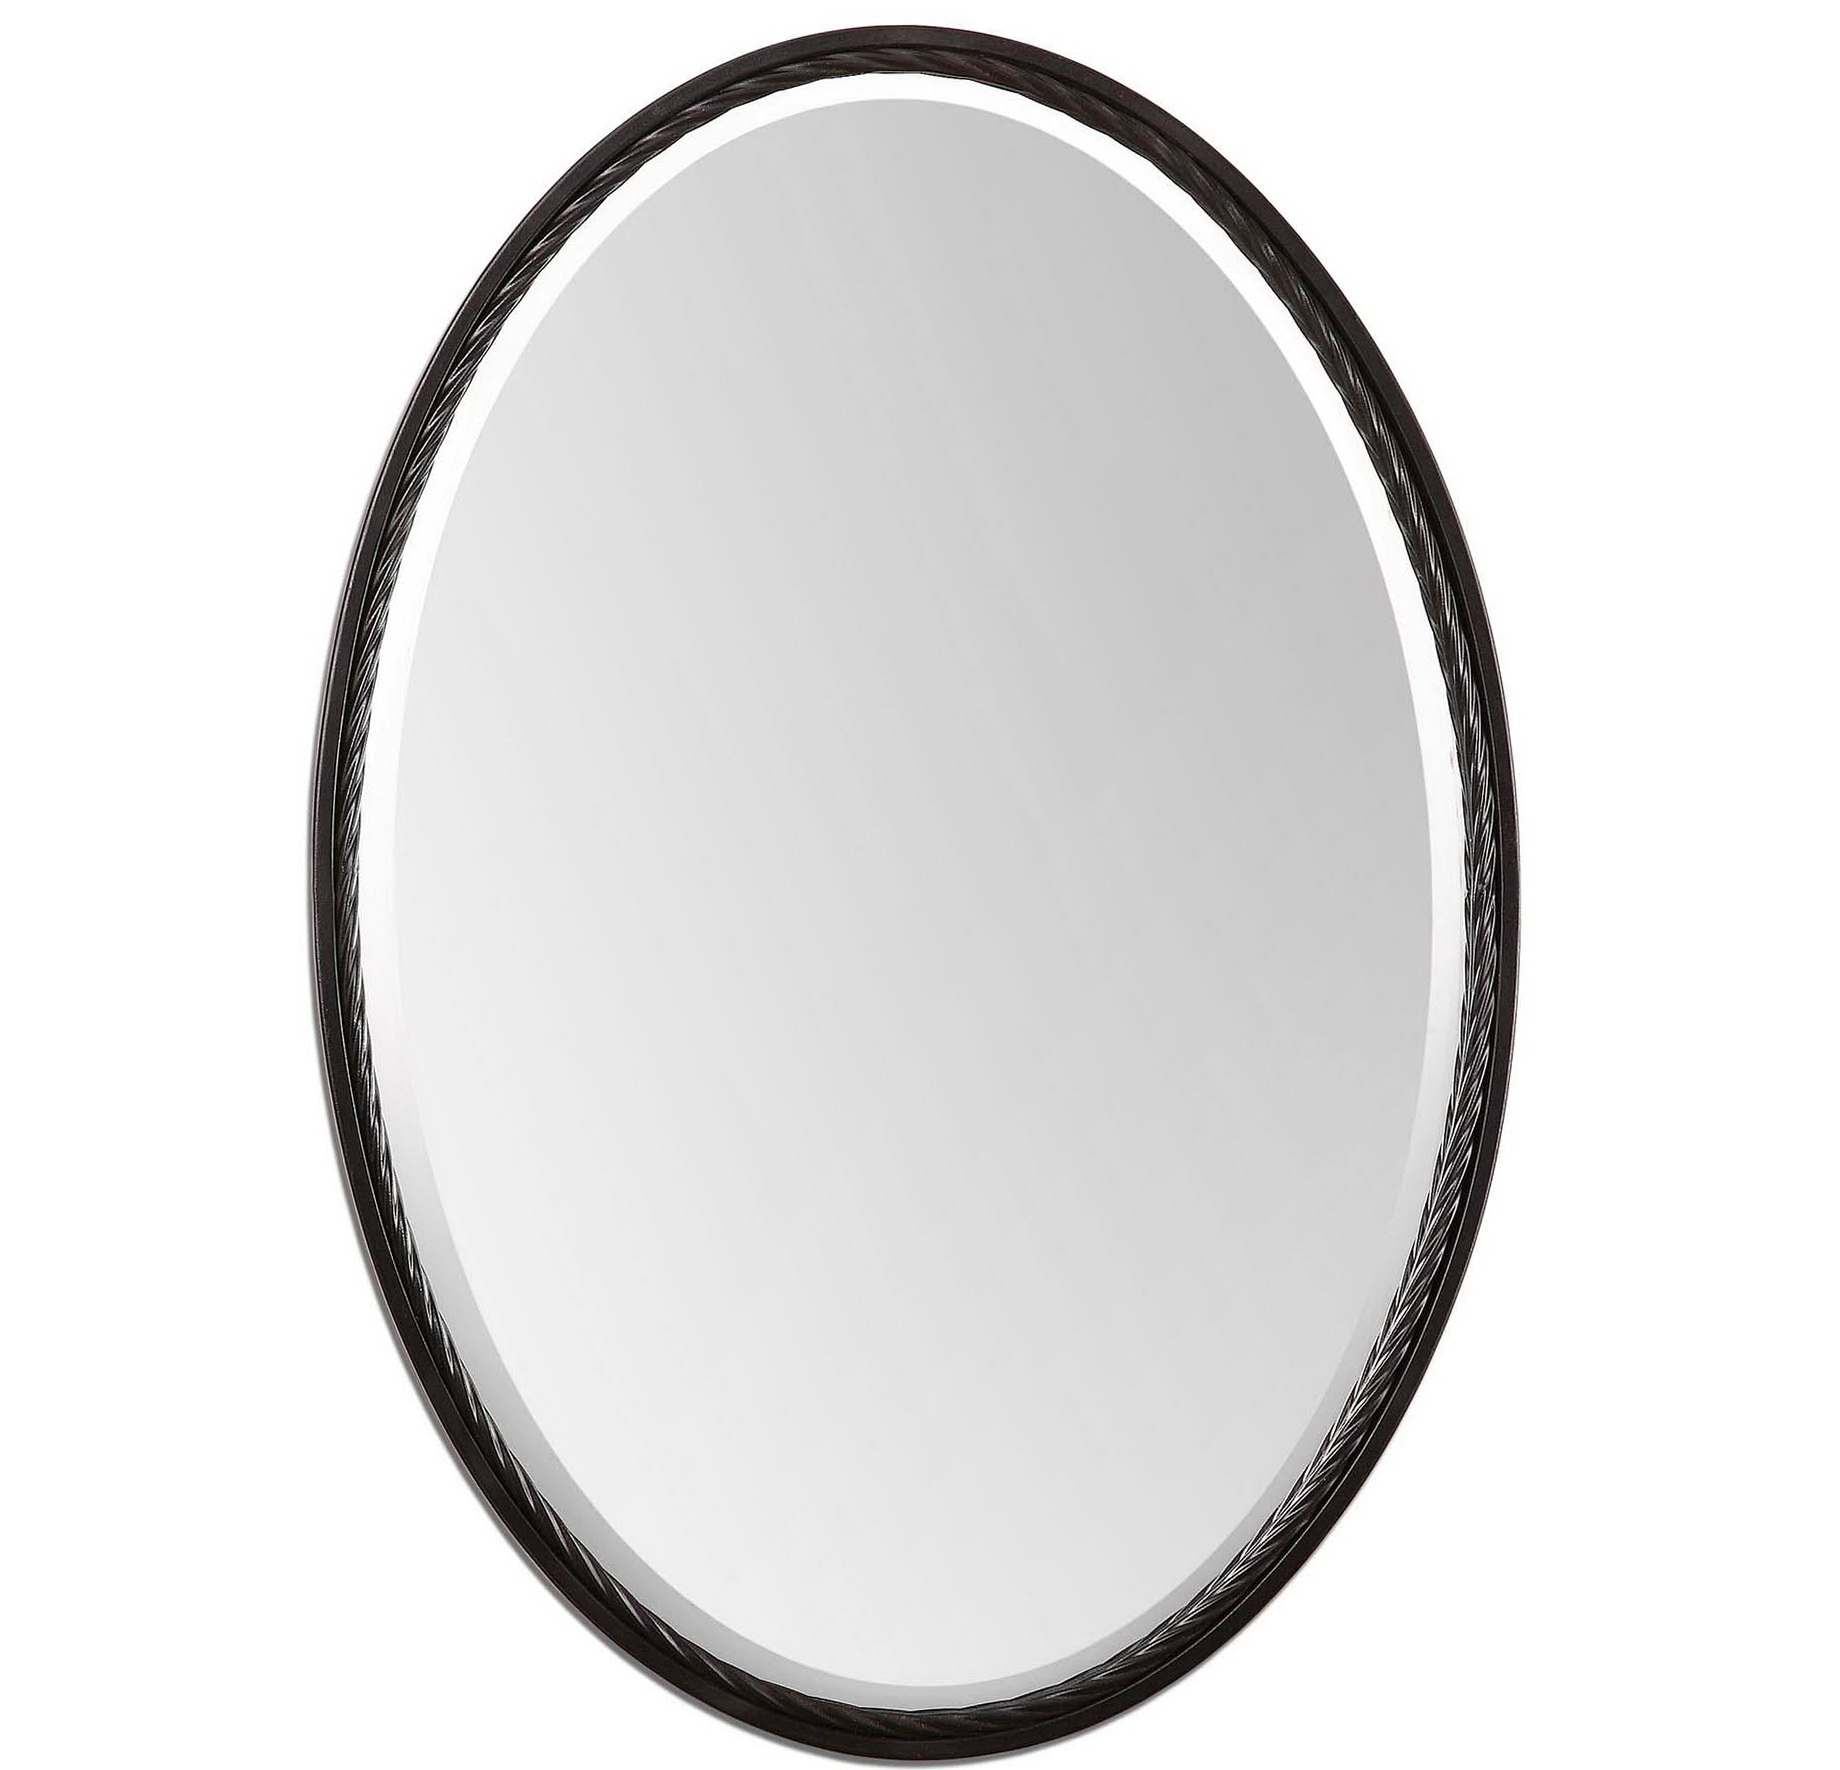 Oval Bathroom Mirrors Oil Rubbed Bronze